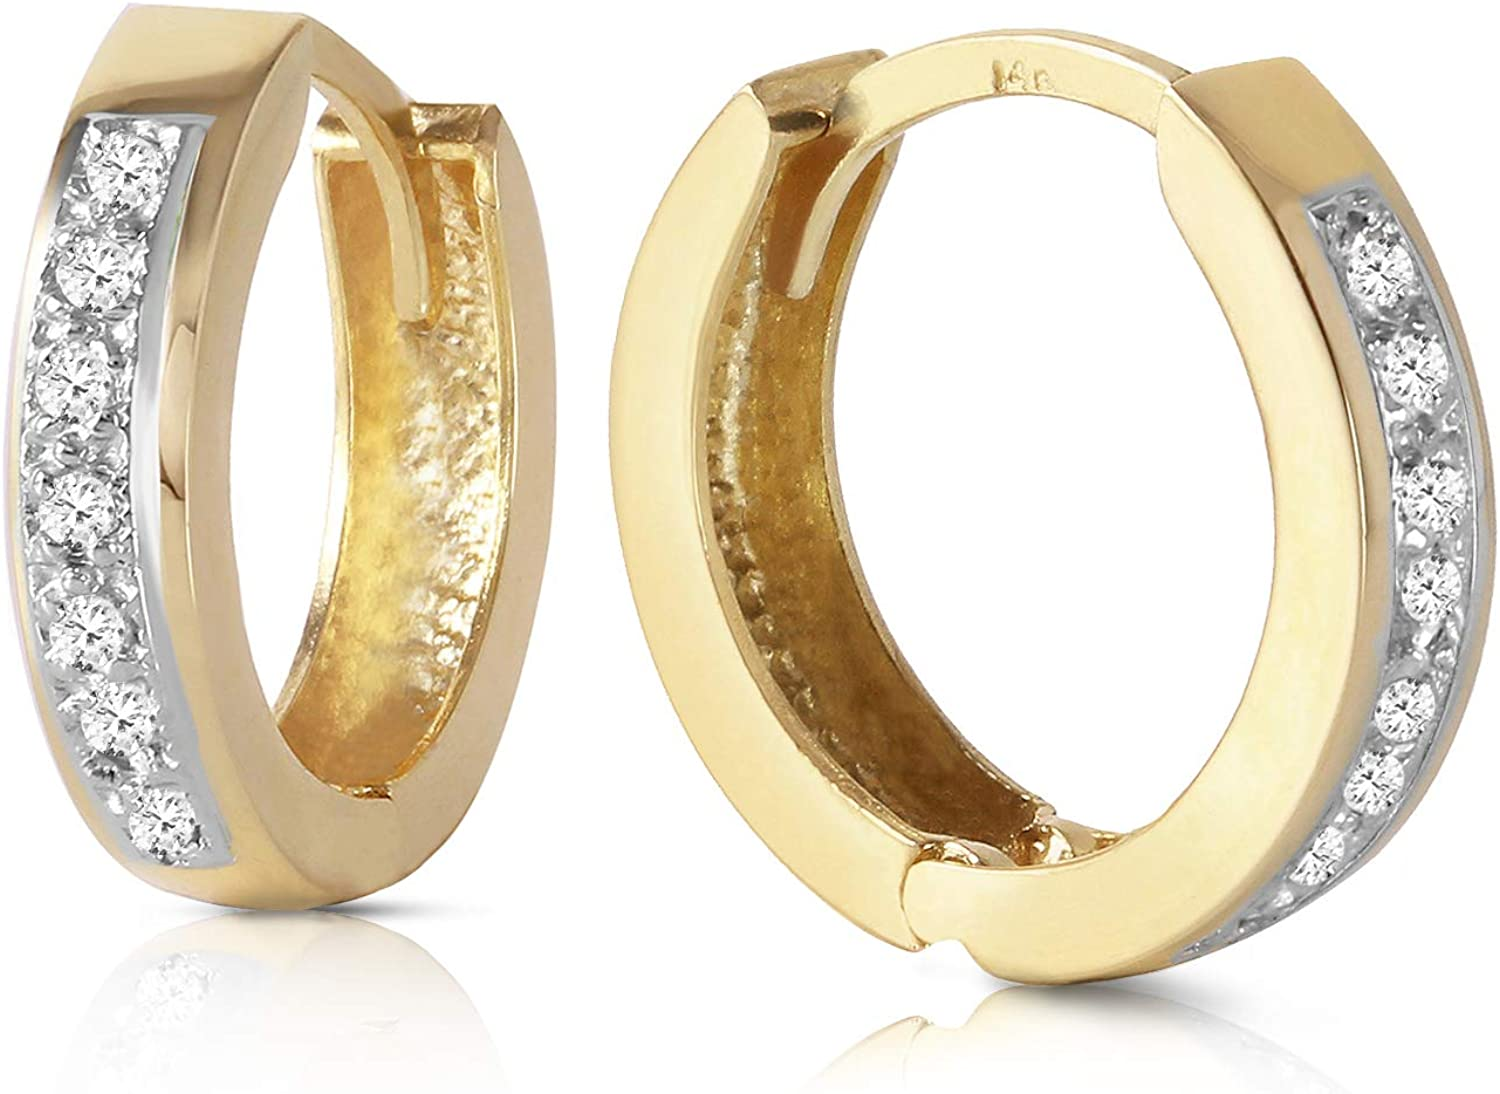 Max 67% OFF Cheap mail order sales Galaxy Gold GG 14k Solid Hoop Earrings Huggie Diamonds with